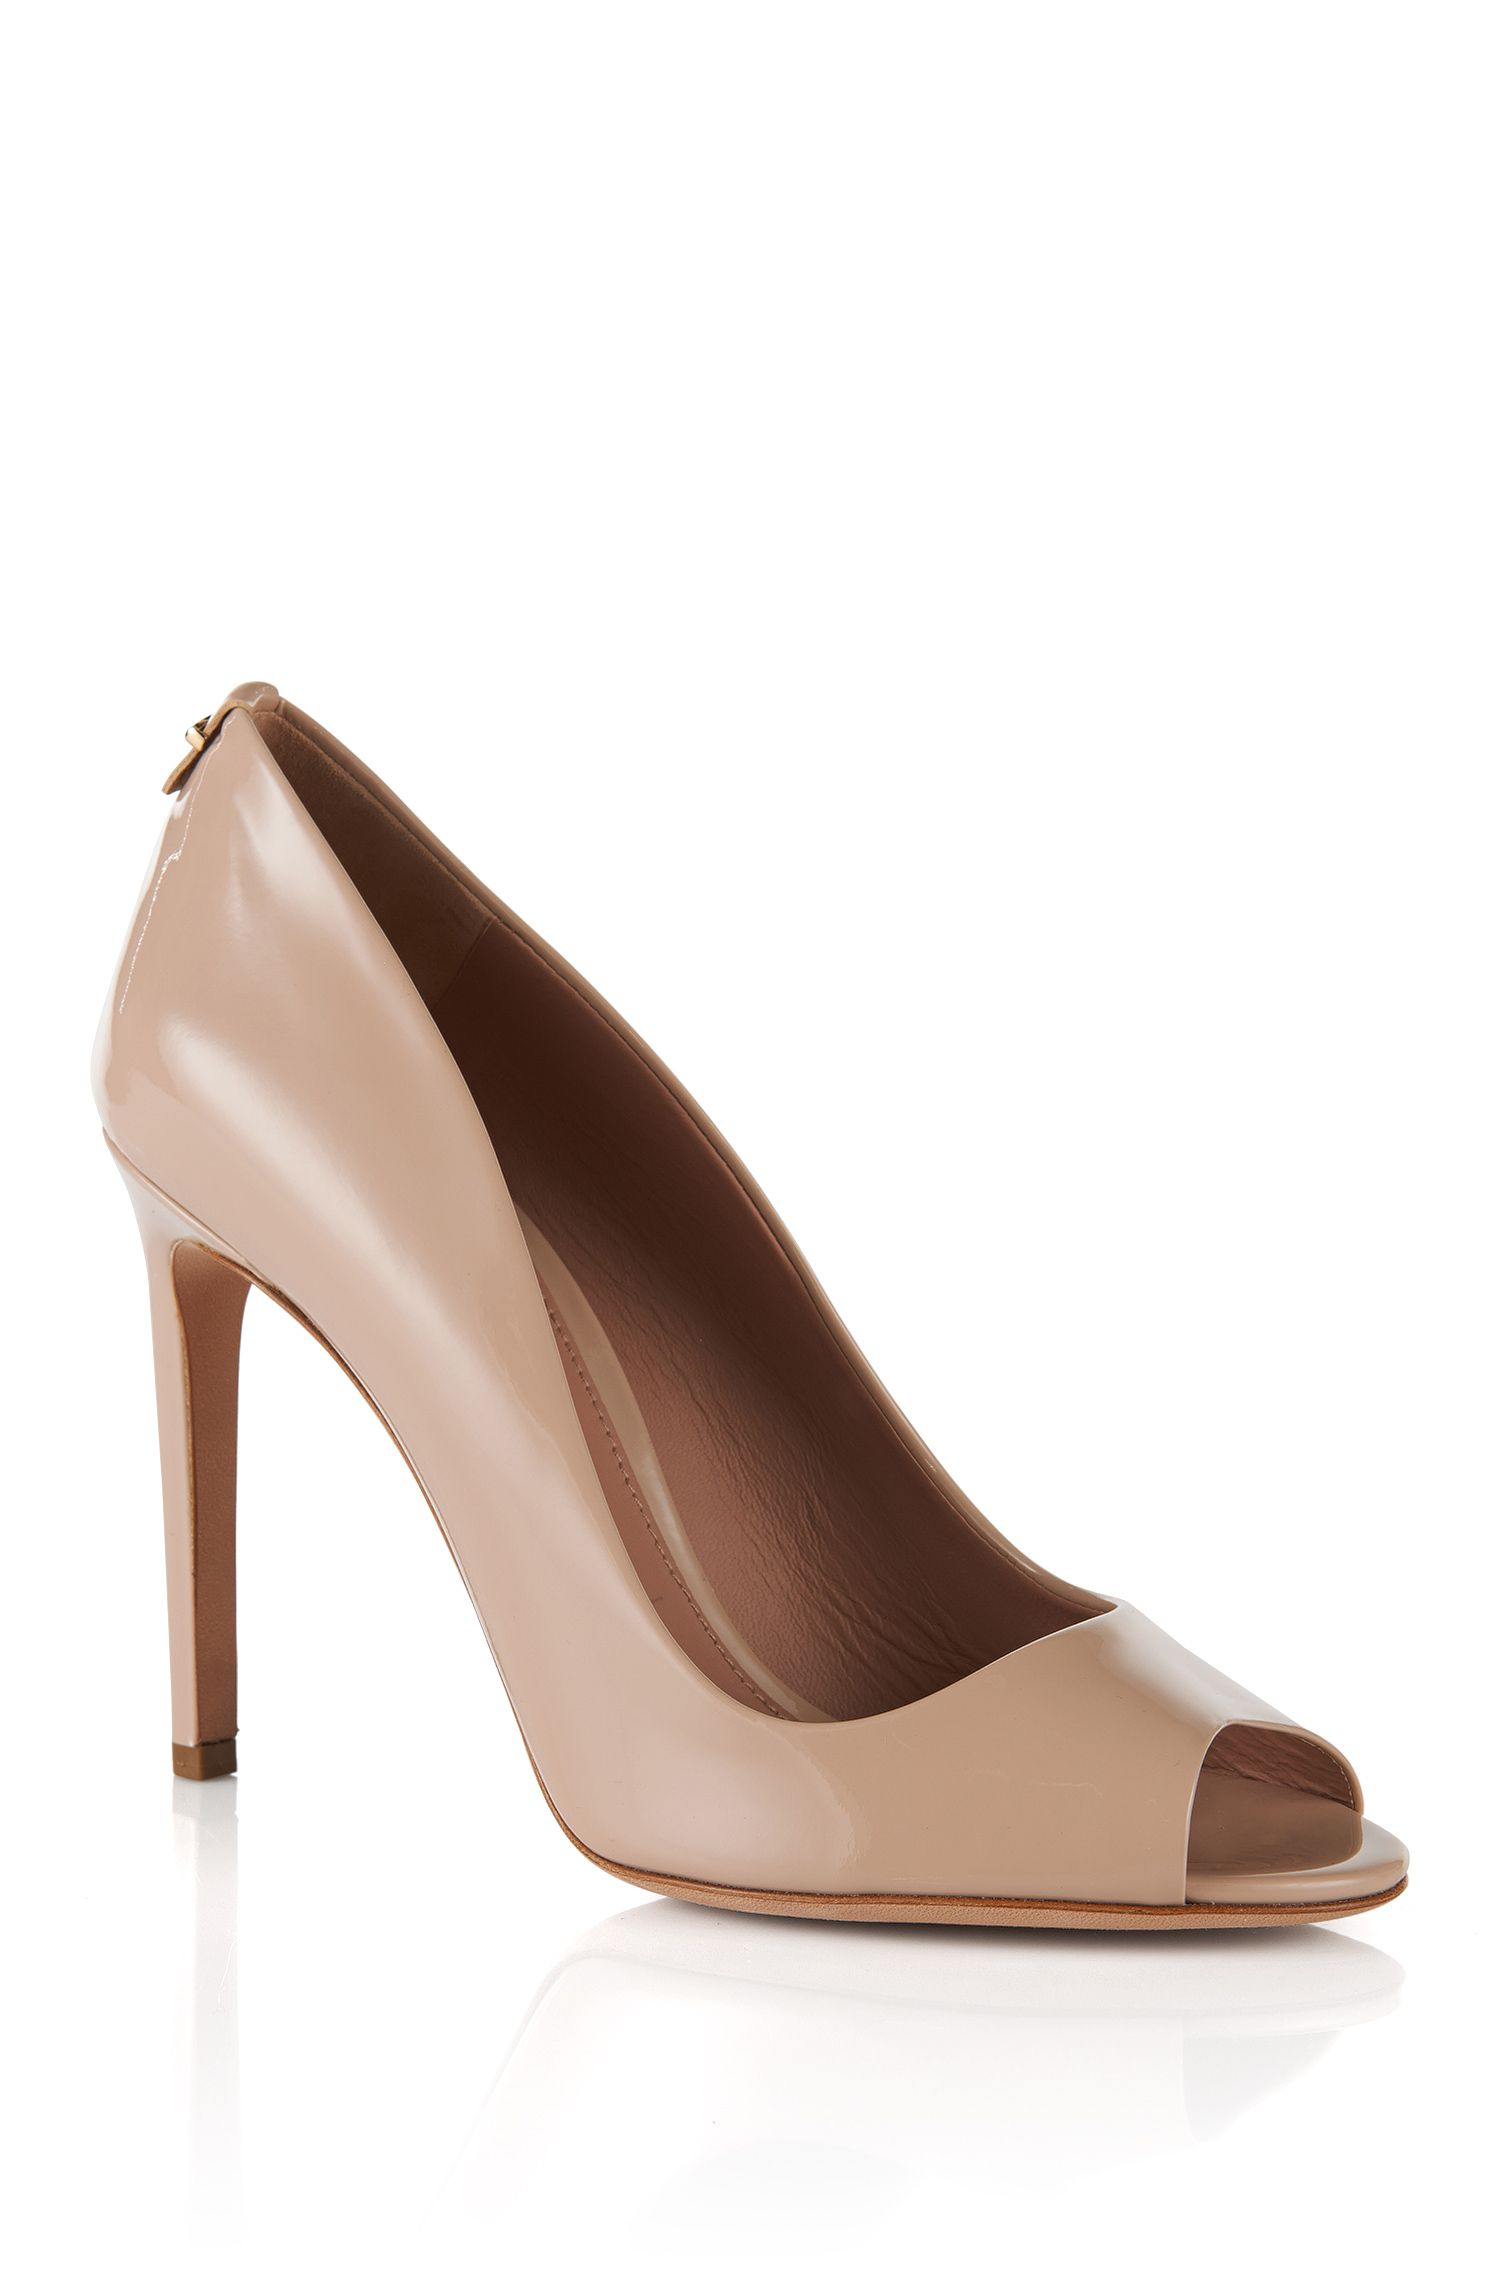 Leather peep-toes: 'Staple Opentoe 100-P', Light Beige